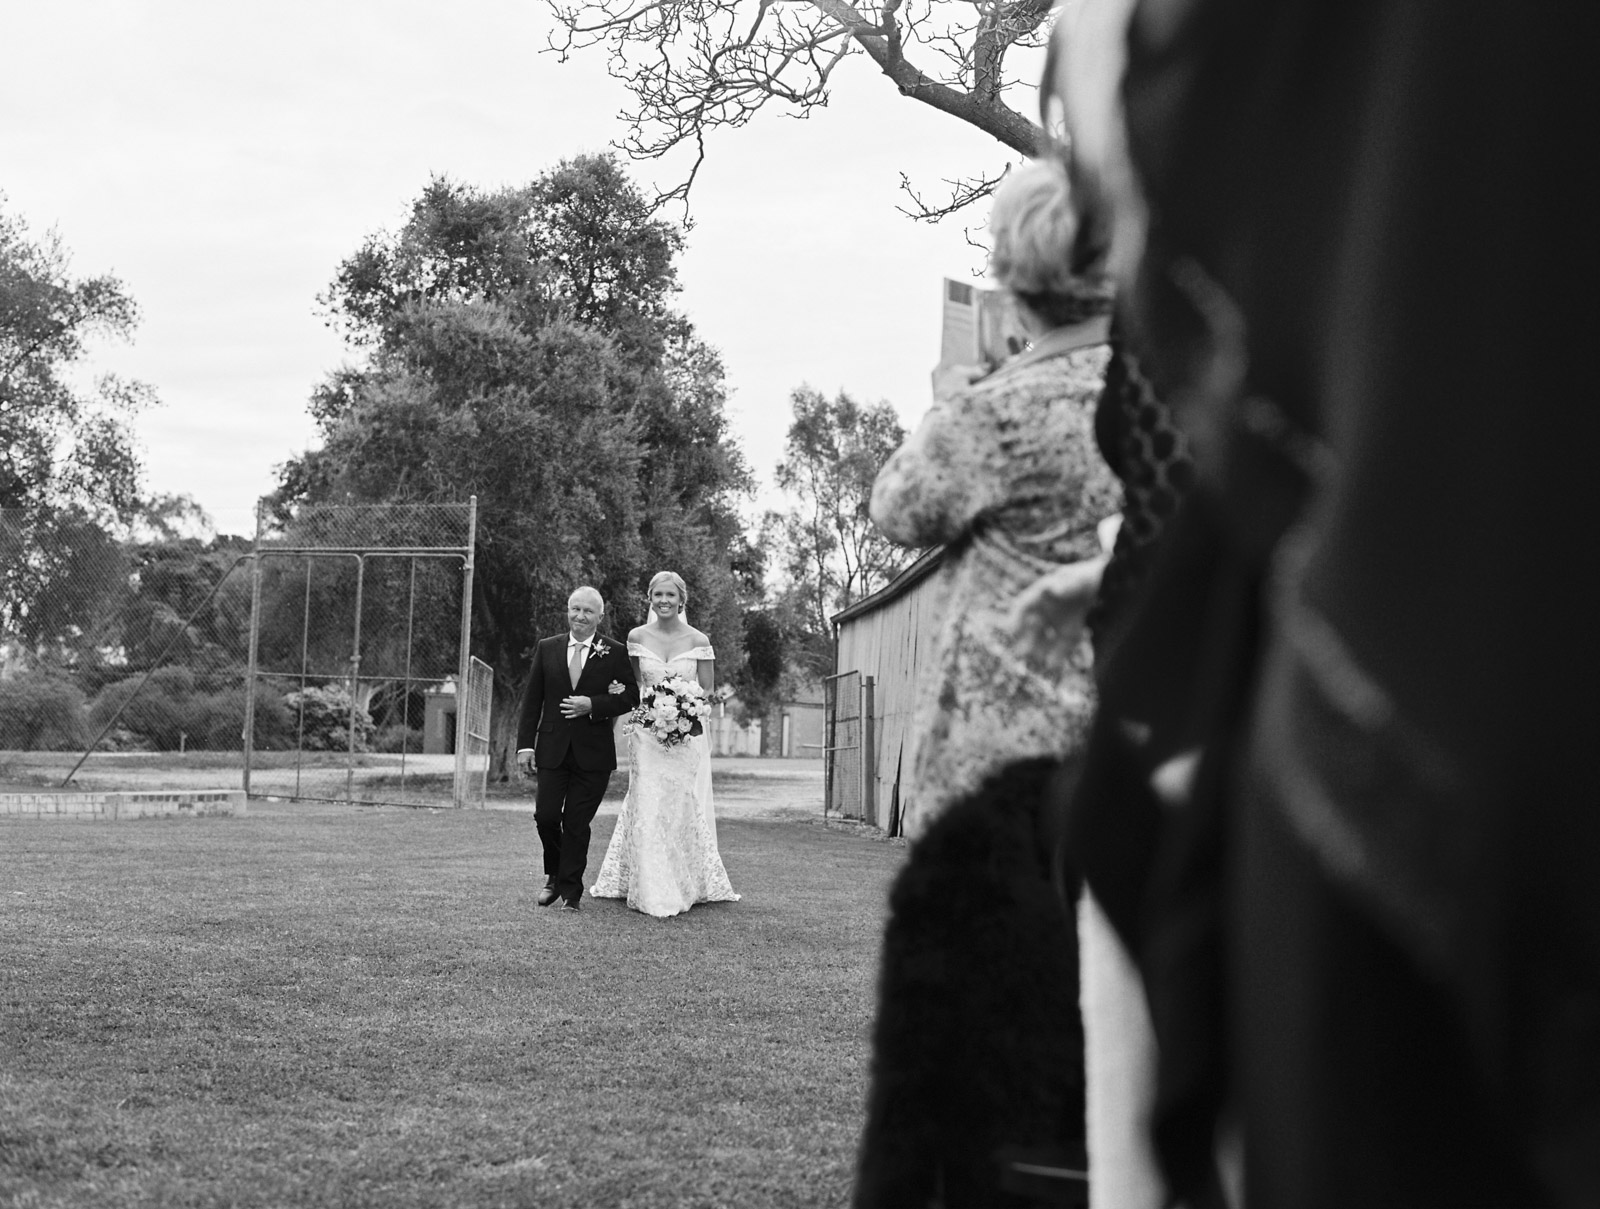 SALTRAMS-BAROSSA-WEDDING-PHOTOGRAPHER_0019.jpg